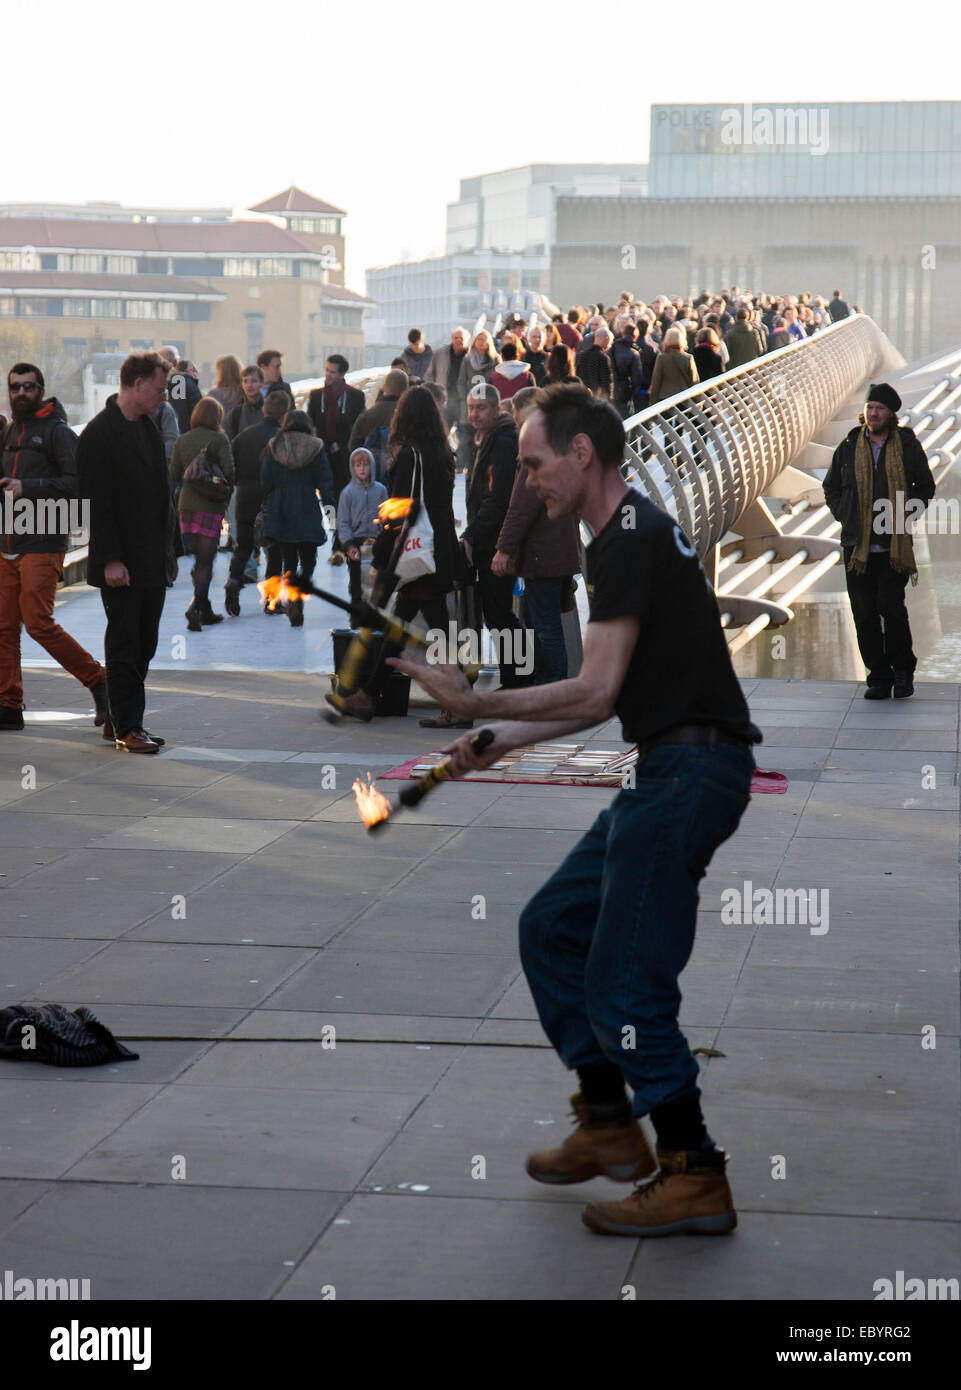 Street Busker entertainer playing with fire London - Stock Image